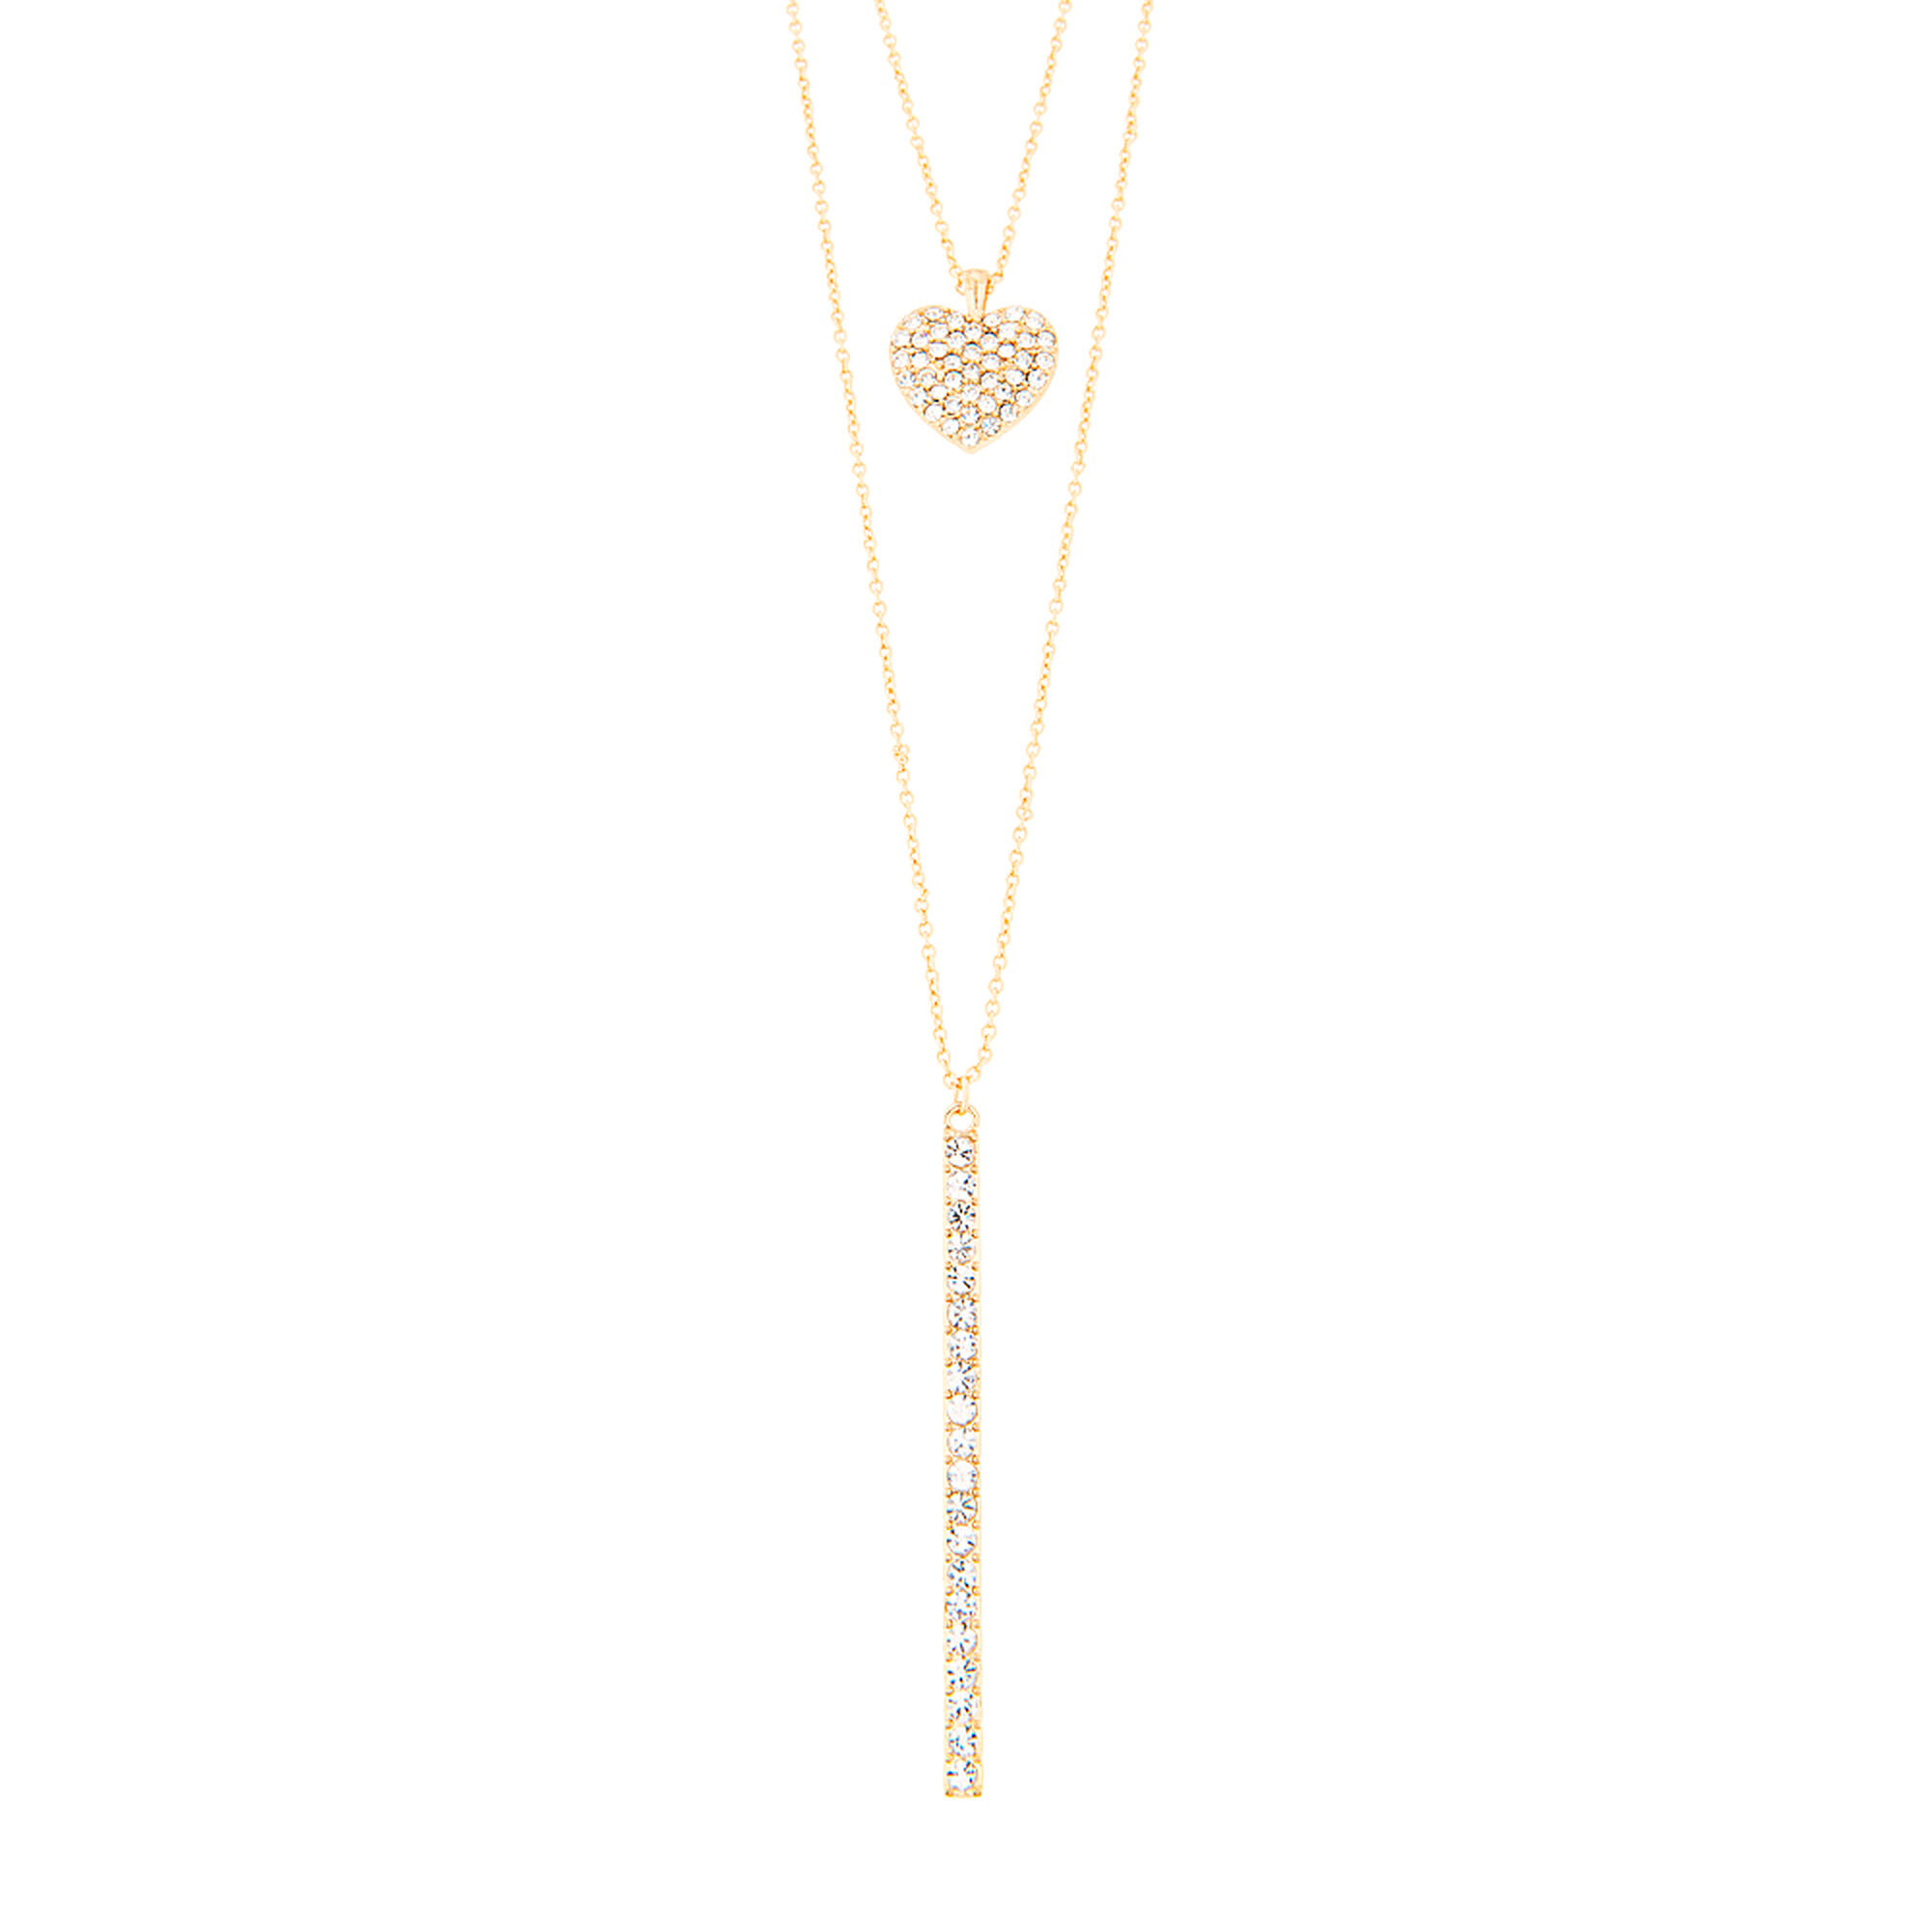 marquise long stone lv bar sh necklace gold catherine popesco shade crystal layering pendant dainty